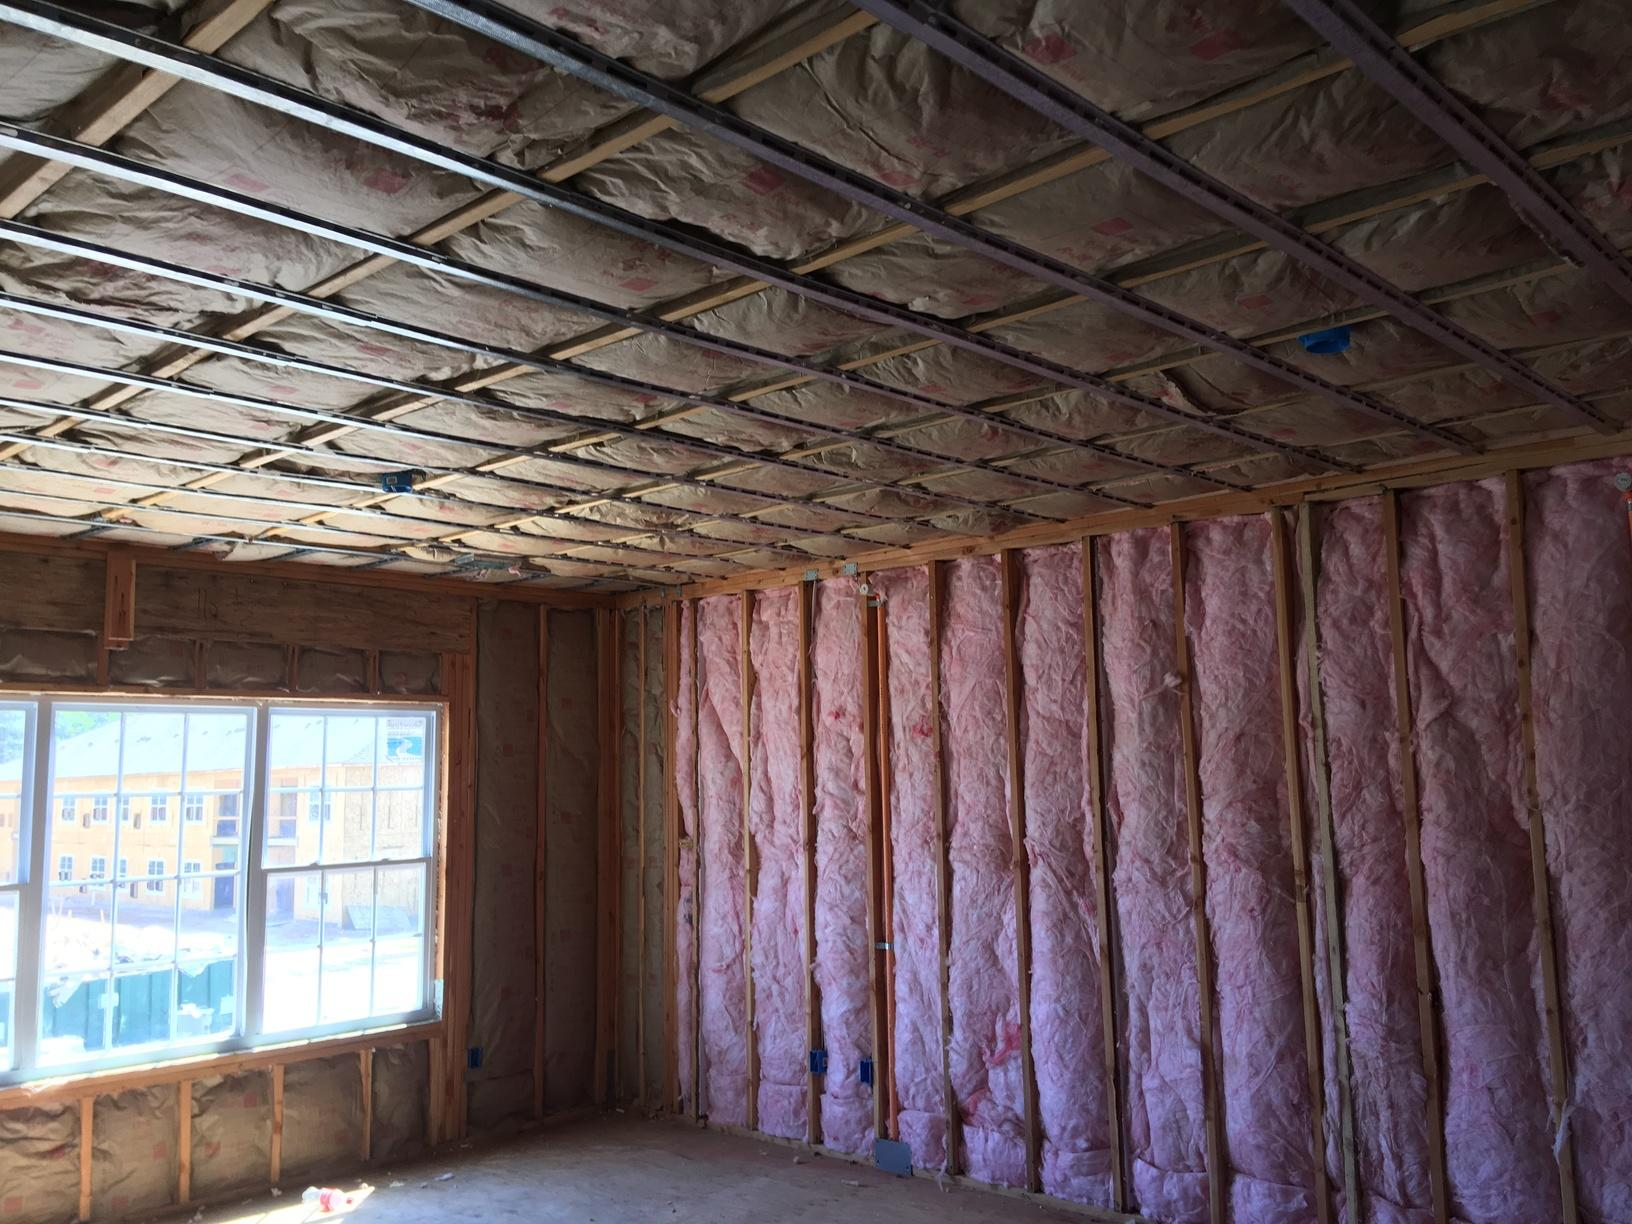 Newly Built Home Insulated in Jackson, NJ - After Photo